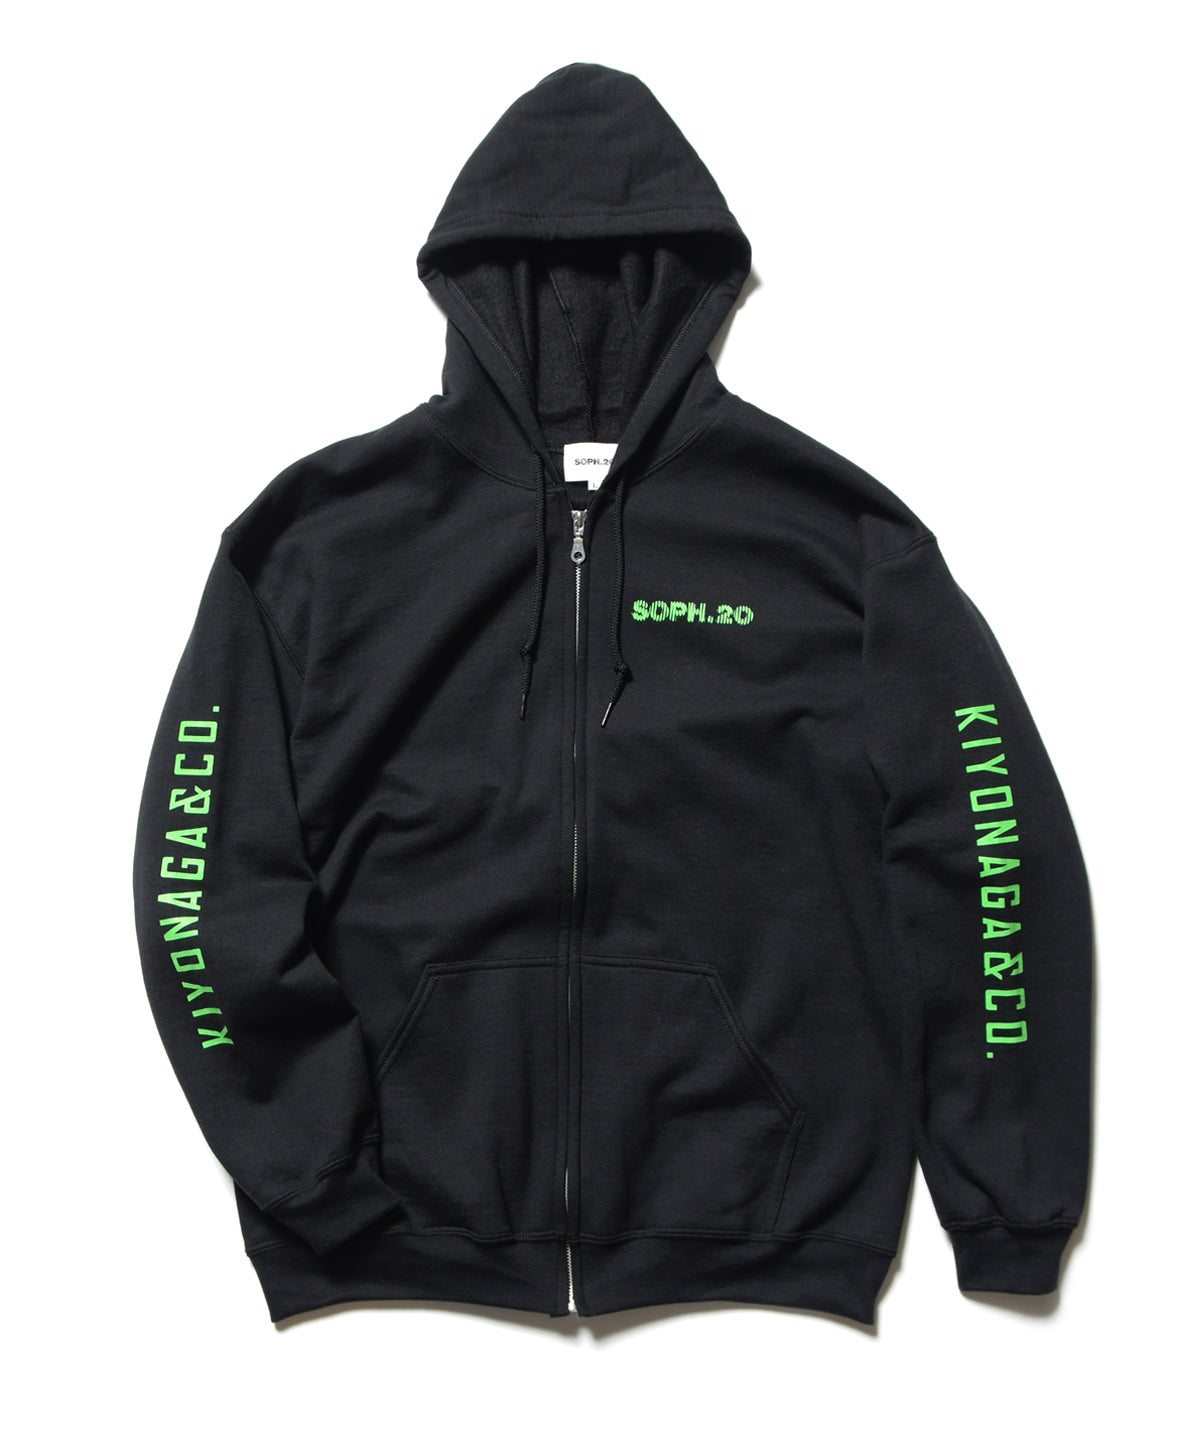 SOPH.20 ZIP UP SWEAT PARKA